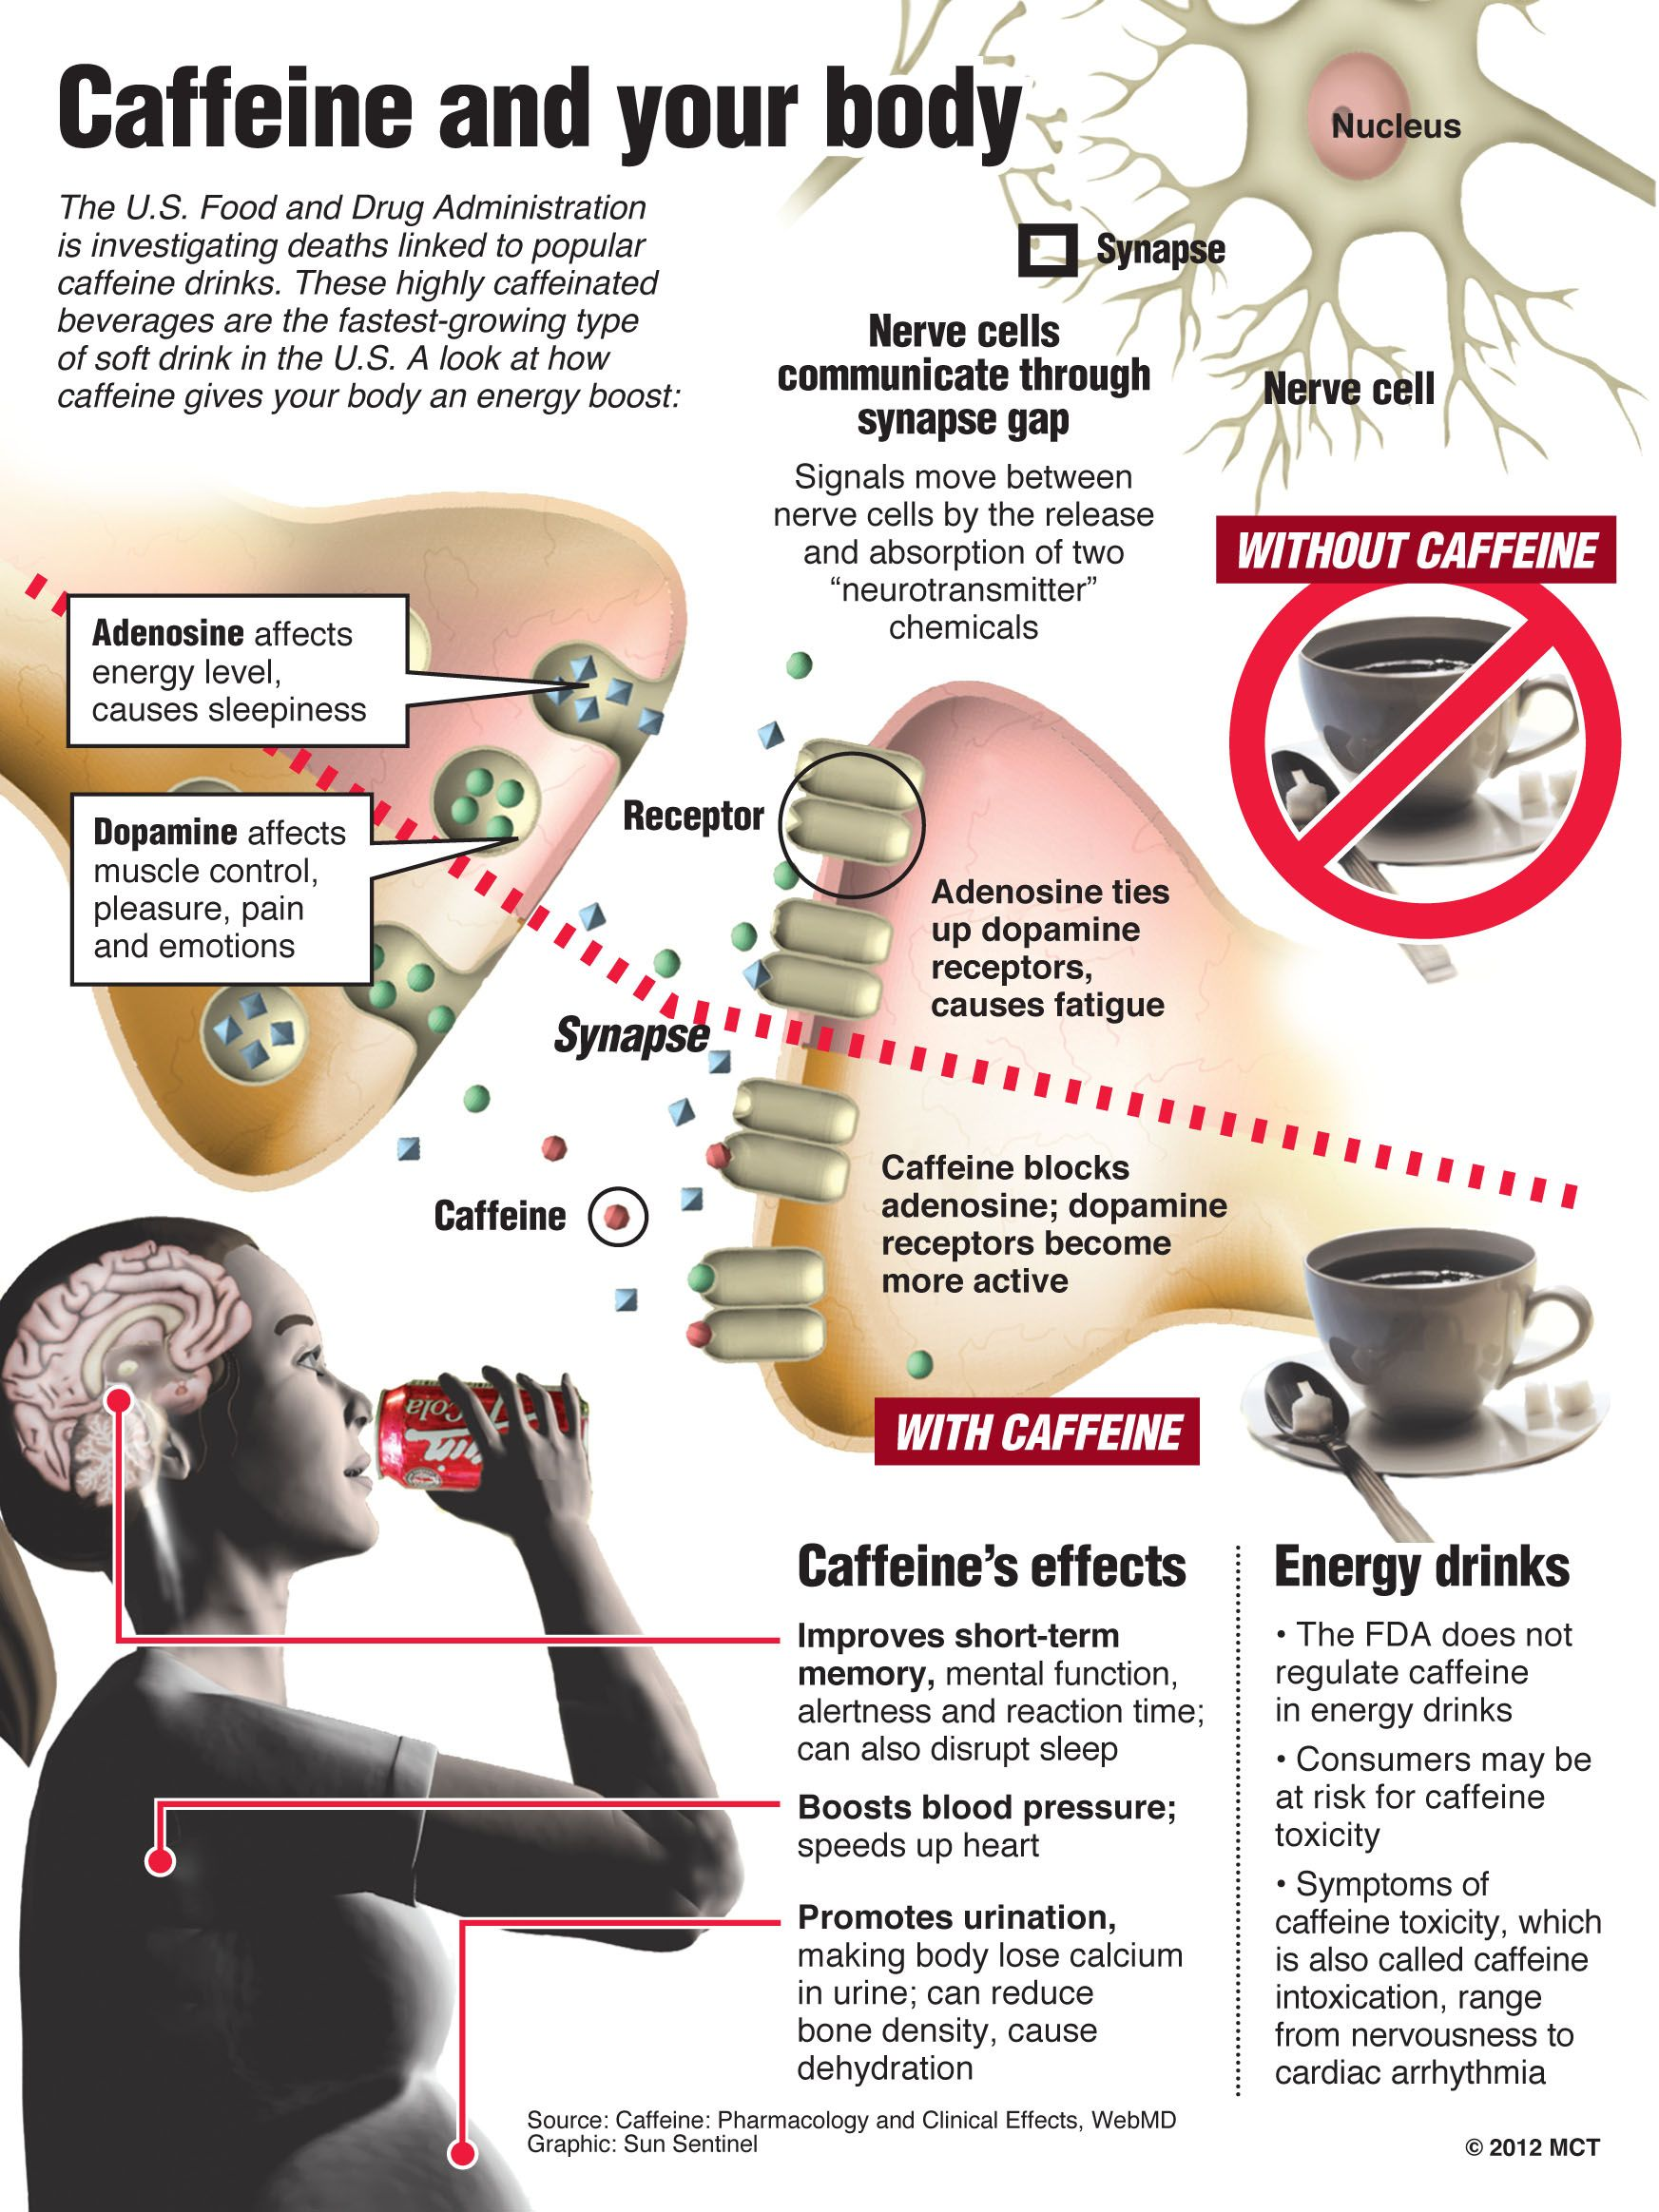 Do The Pros Of Drinking Coffee Outweigh The Cons Even If They Don T That S Not Stopping Us From Drinki Coffee Health Coffee Infographic Coffee Pros And Cons